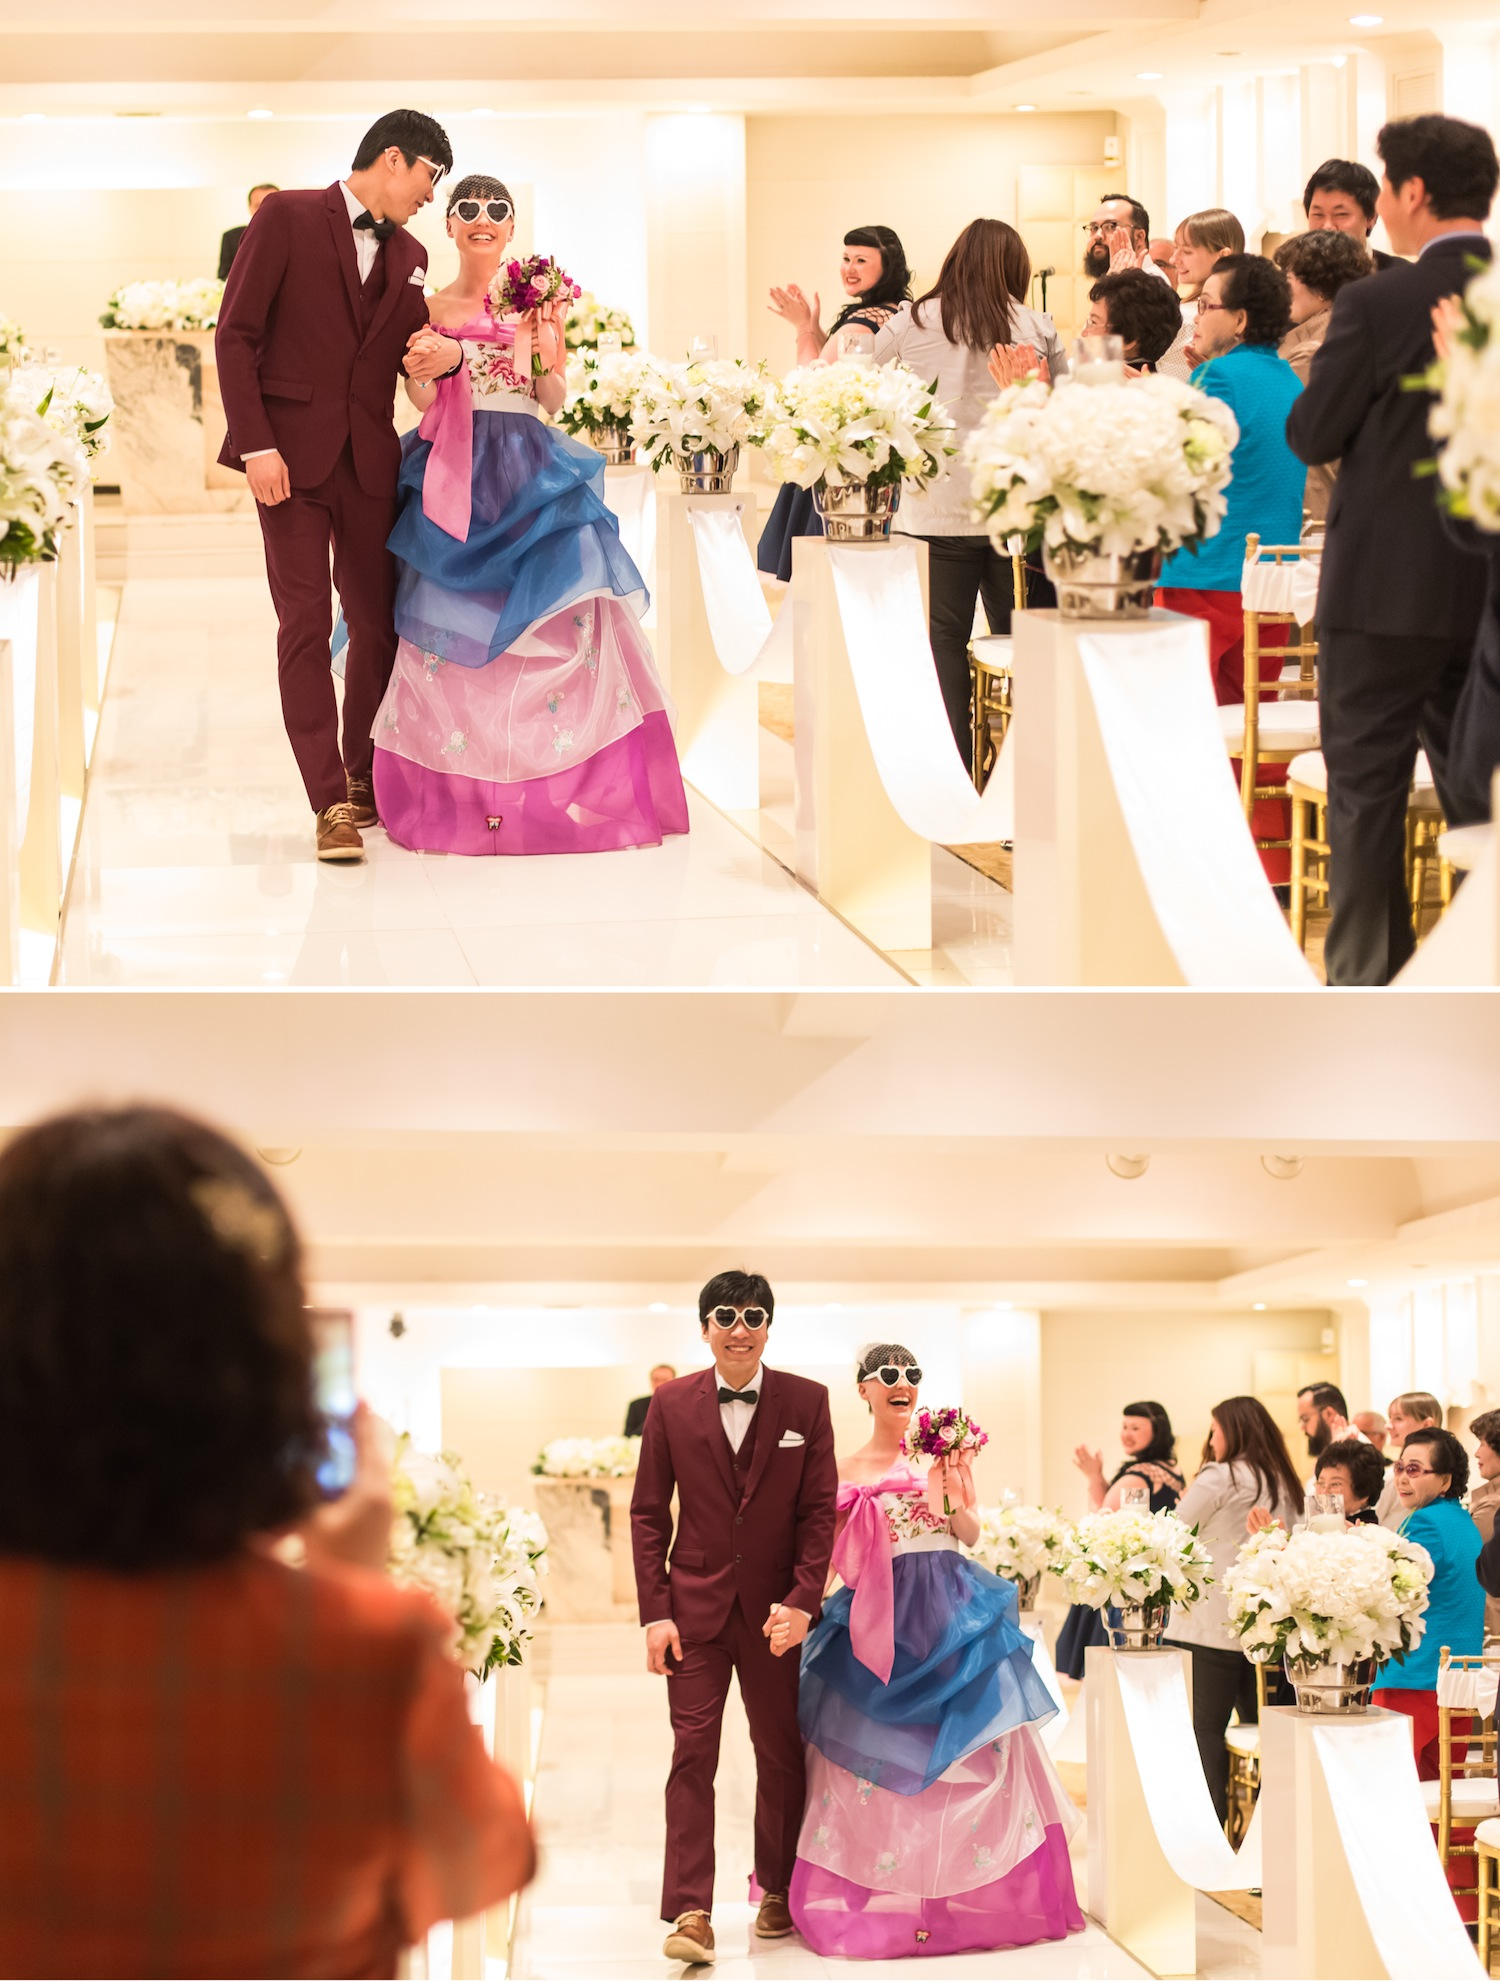 Wedding photos in Korea